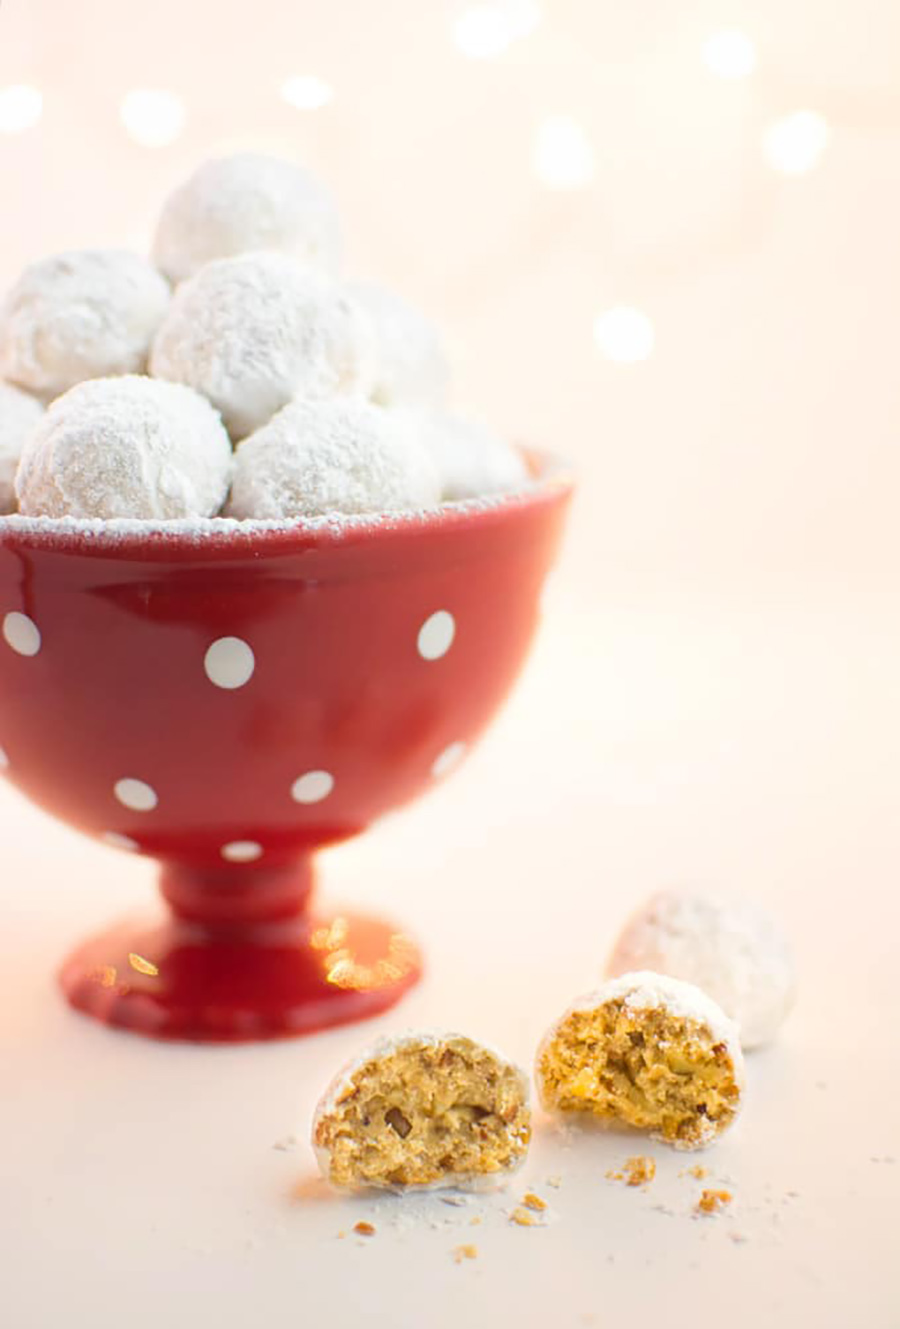 A red cup with white polka dots filled with snowball cookies sitting on a counter with one cookie broken open sitting in front.